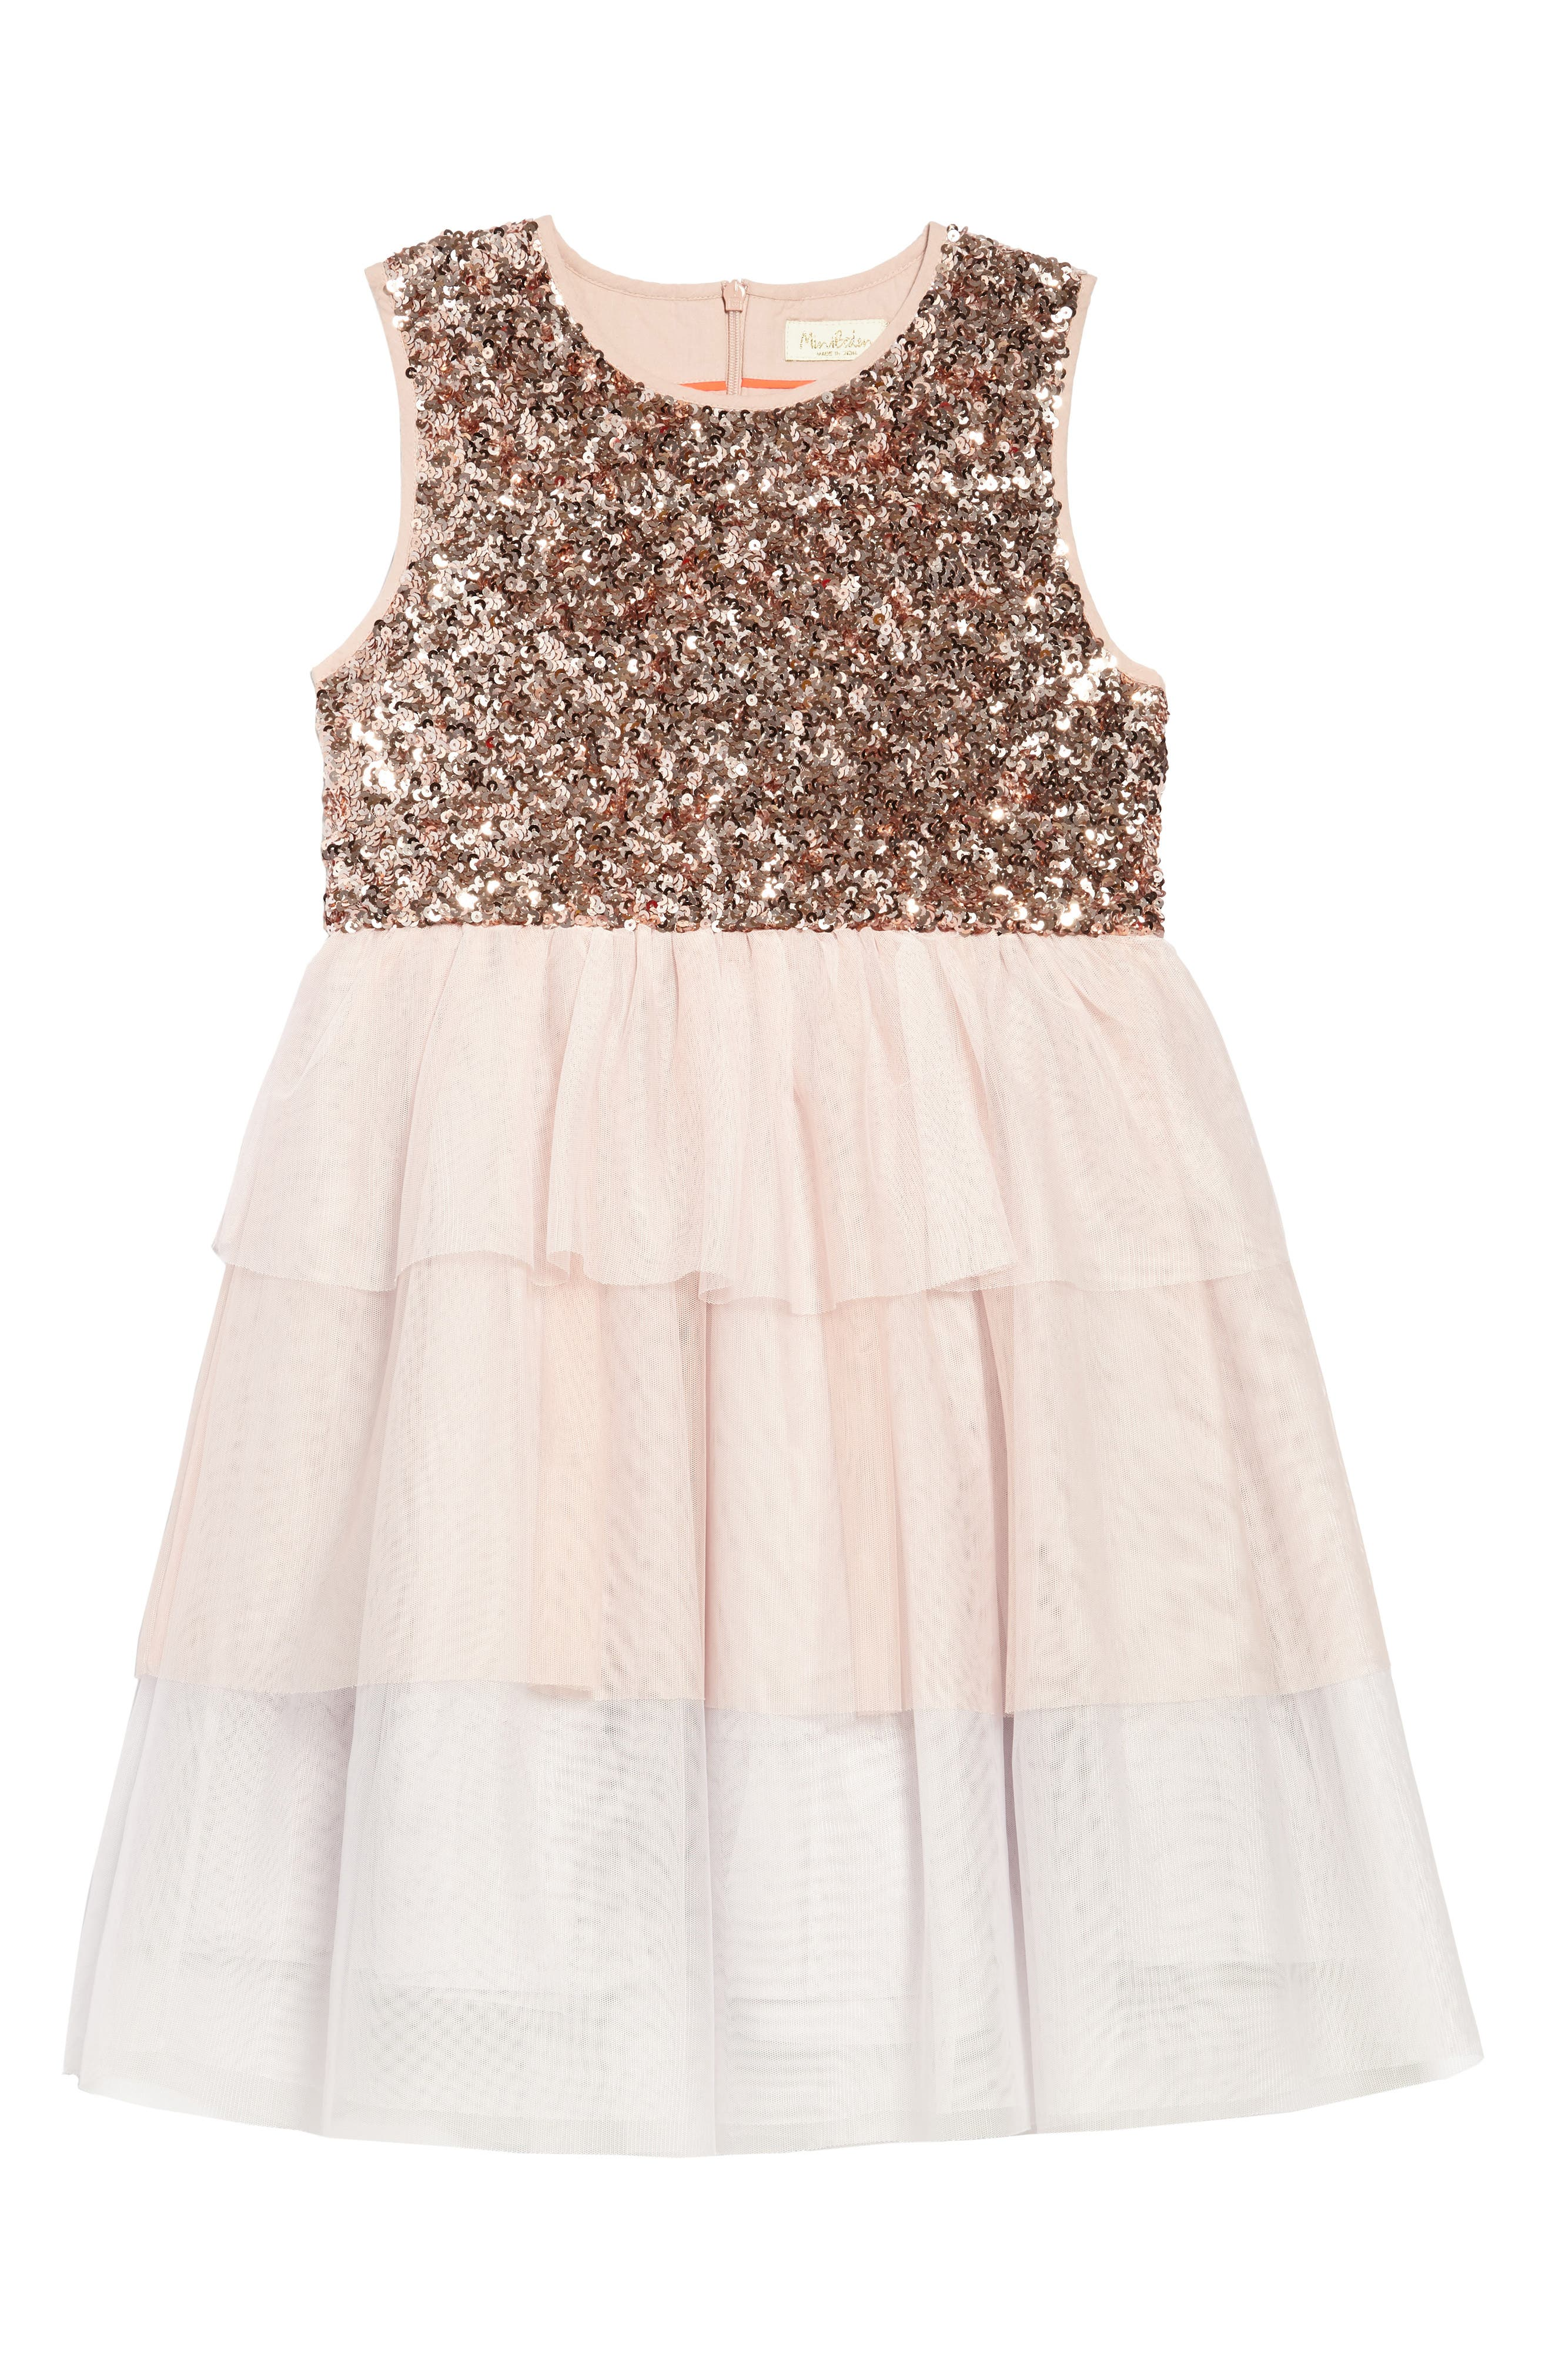 Sequin Tiered Tutu Dress,                             Main thumbnail 1, color,                             Pnkprovence Dusty Pink